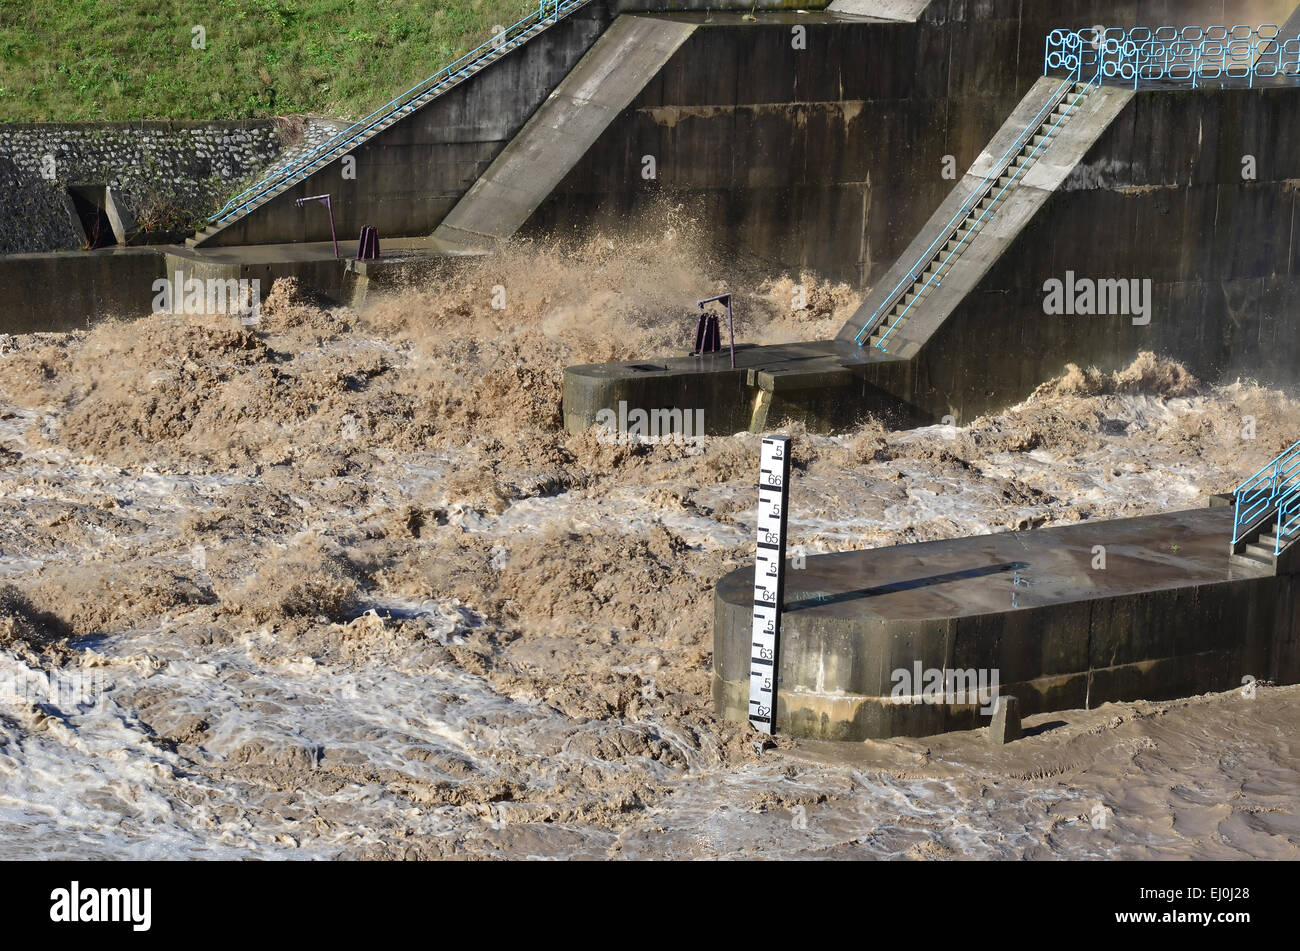 Flood water bursting over a dam, after extremely high rainfall, possibly caused by climate change. - Stock Image